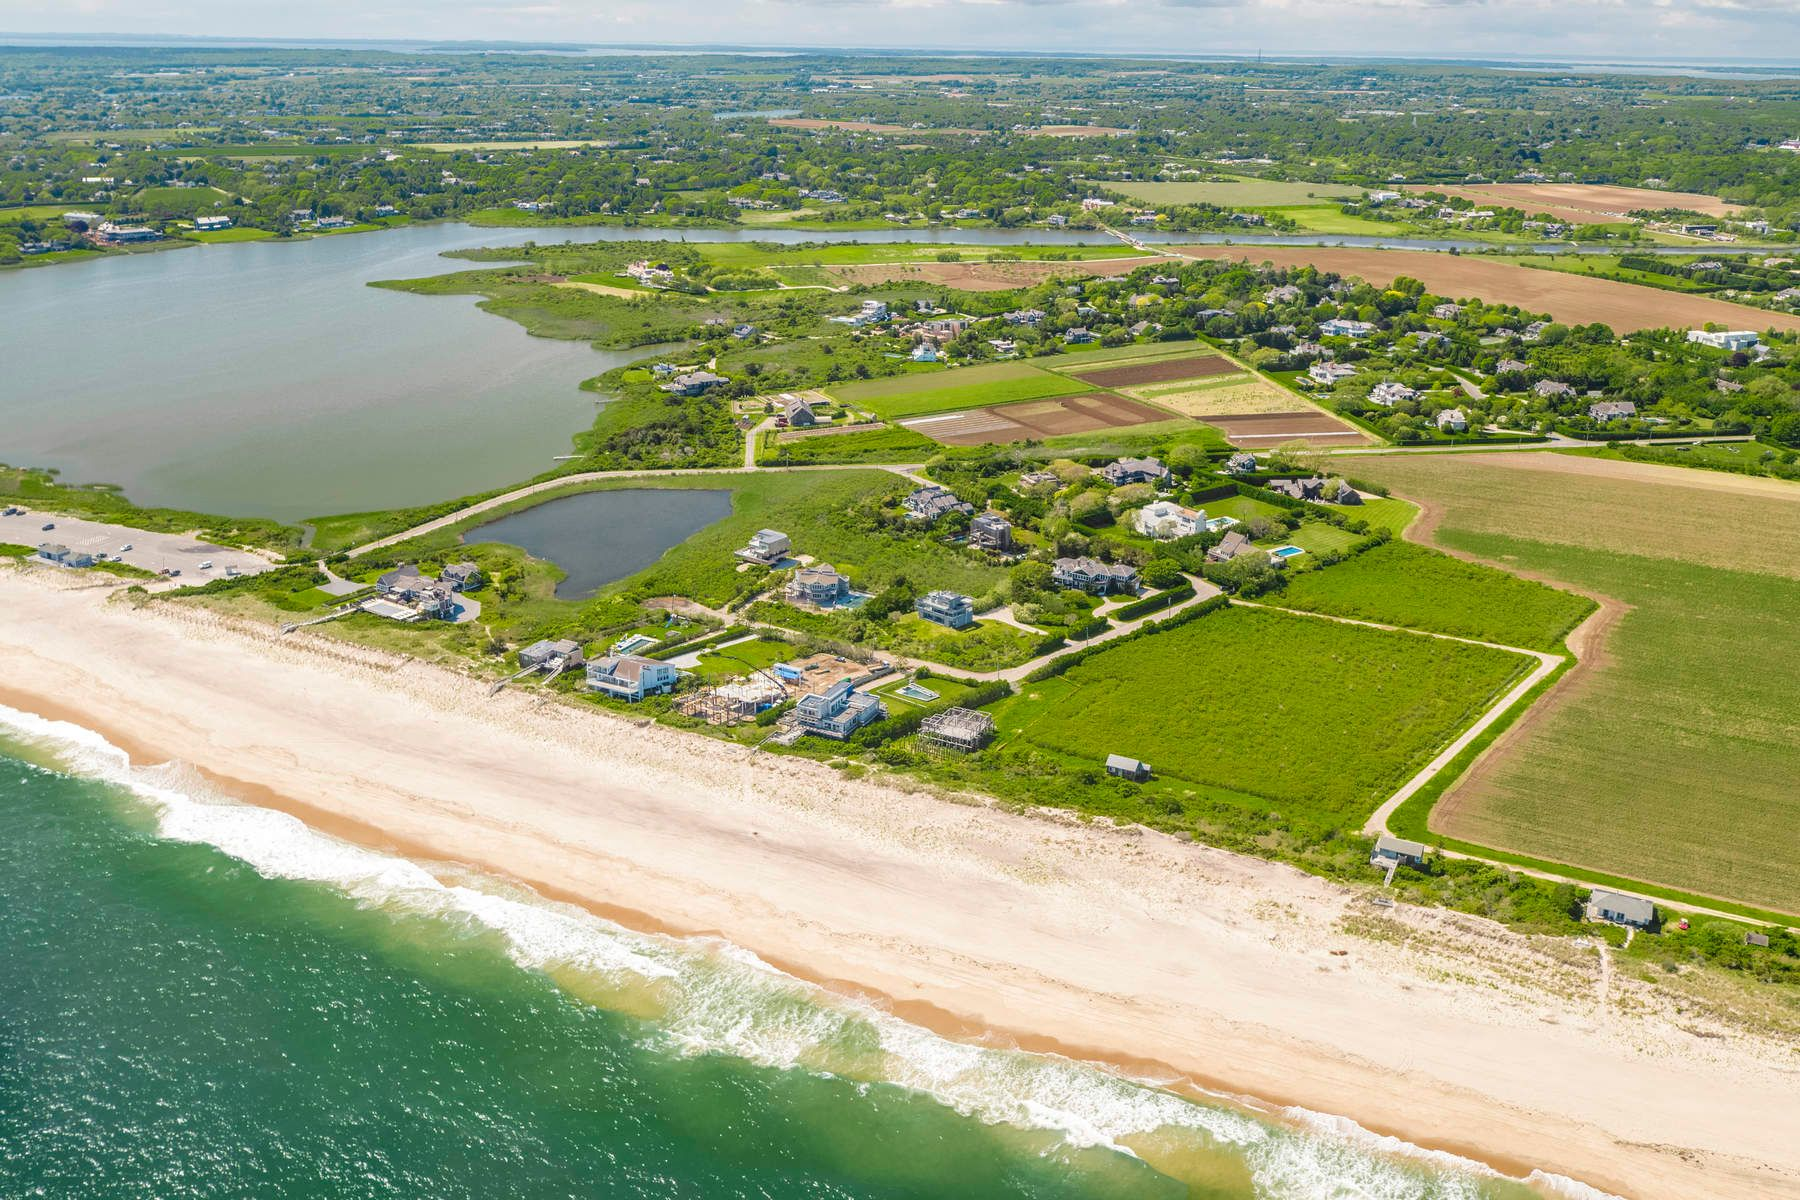 Single Family Home for Sale at Sagaponack Ocean Sunrises & Pond Sunsets 59 Sandune Court Sagaponack, New York 11962 United States